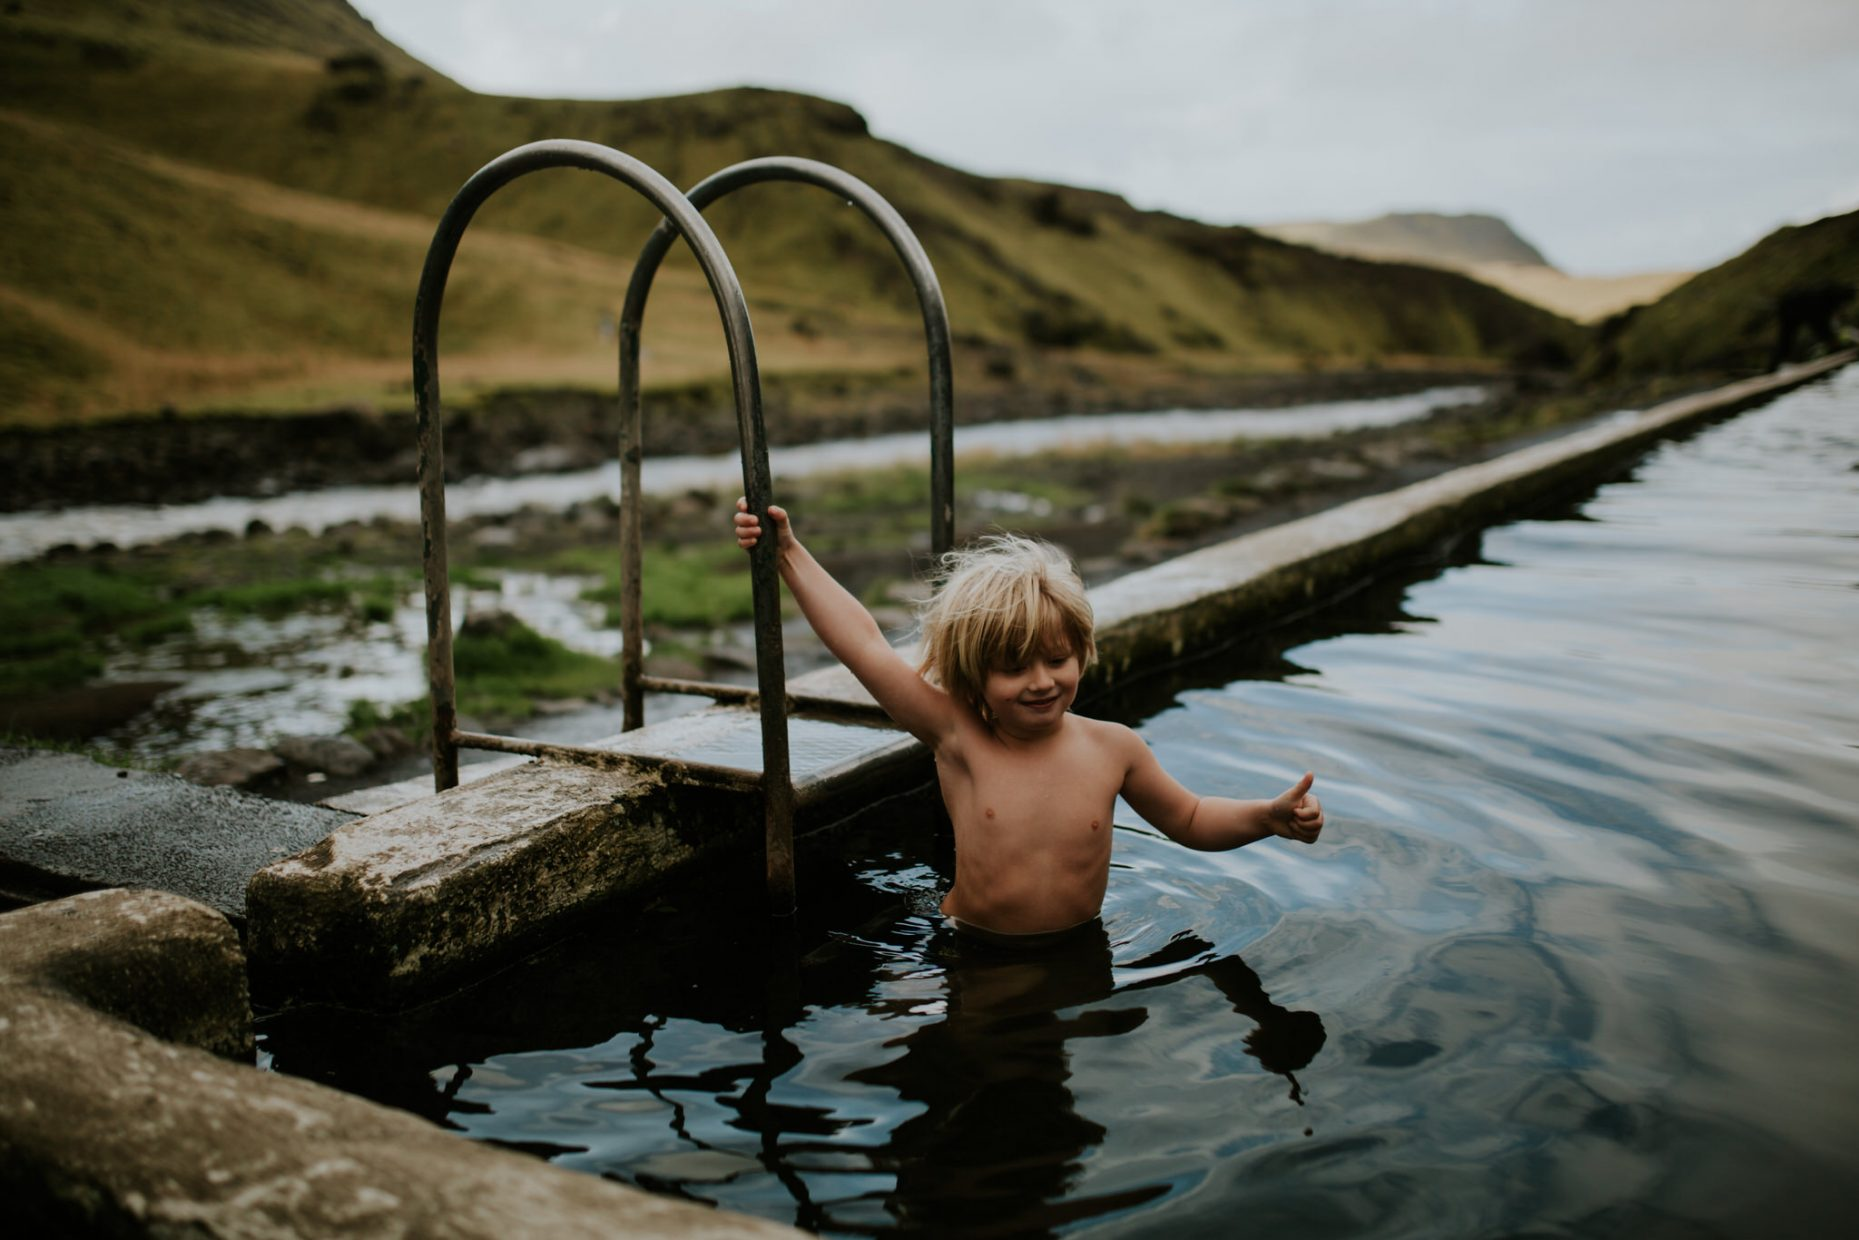 A child is jumping into a hot geothermal pool in Iceland putting his thumbs up at the camera